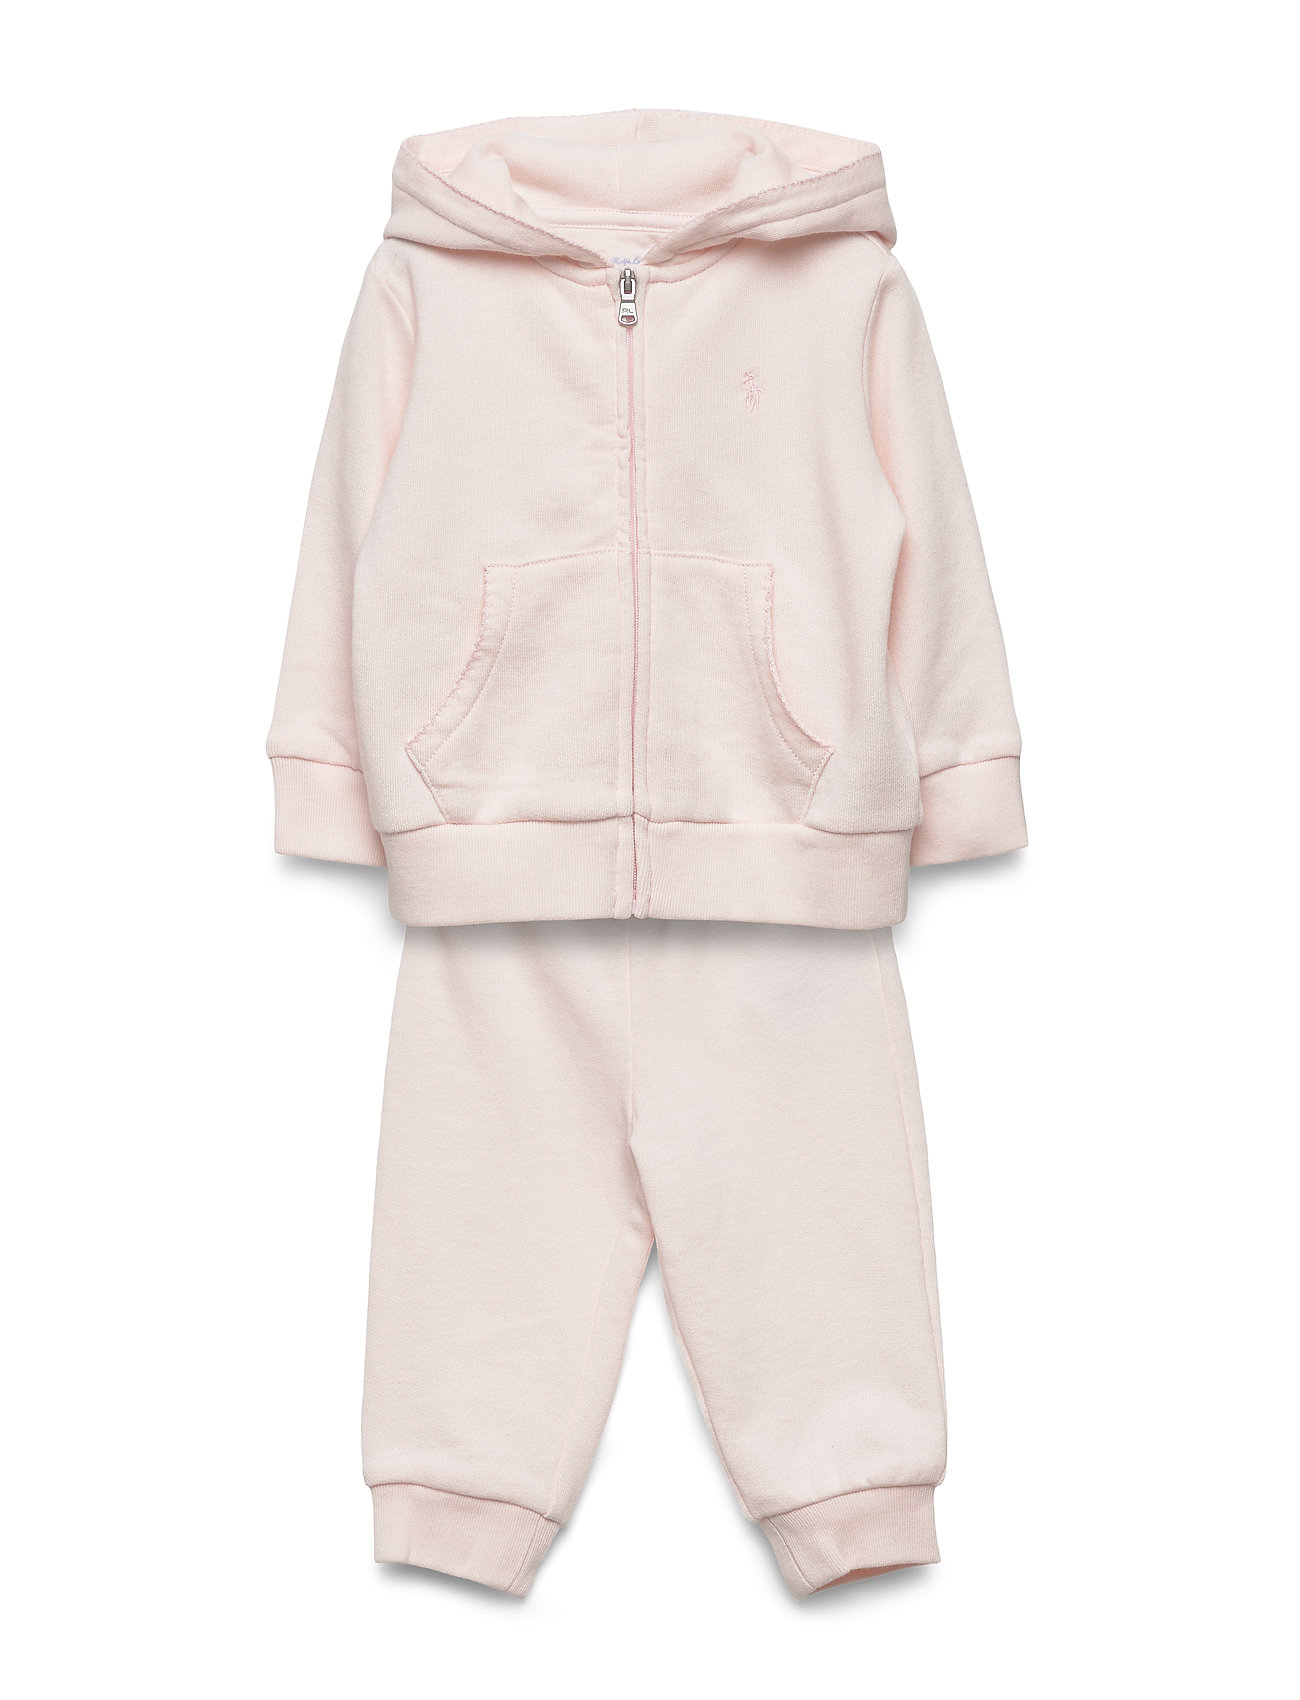 Ralph Lauren Baby French Terry Hoodie & Pant Set - DELICATE PINK